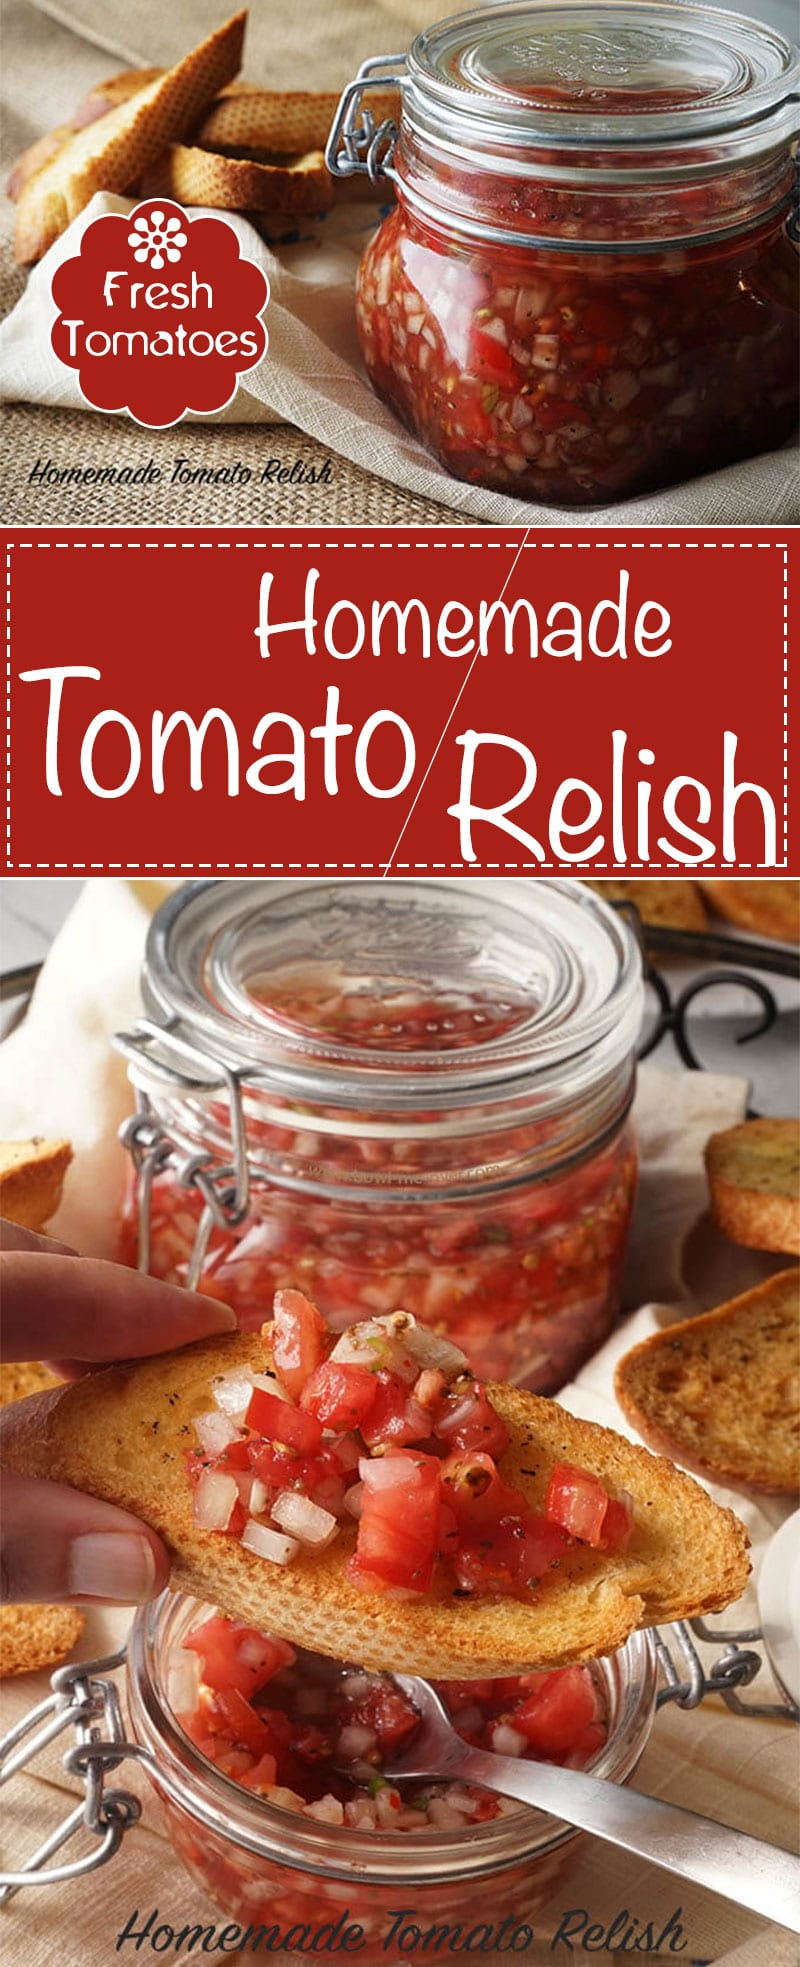 Homemade Tomato Relish will fast become your new favorite condiment! Fresh tomatoes, onions and peppers with delicious pickling spices, it's so versatile! Best Tomato Recipe! | Appetizers, homemade, Relish recipes, from scratch